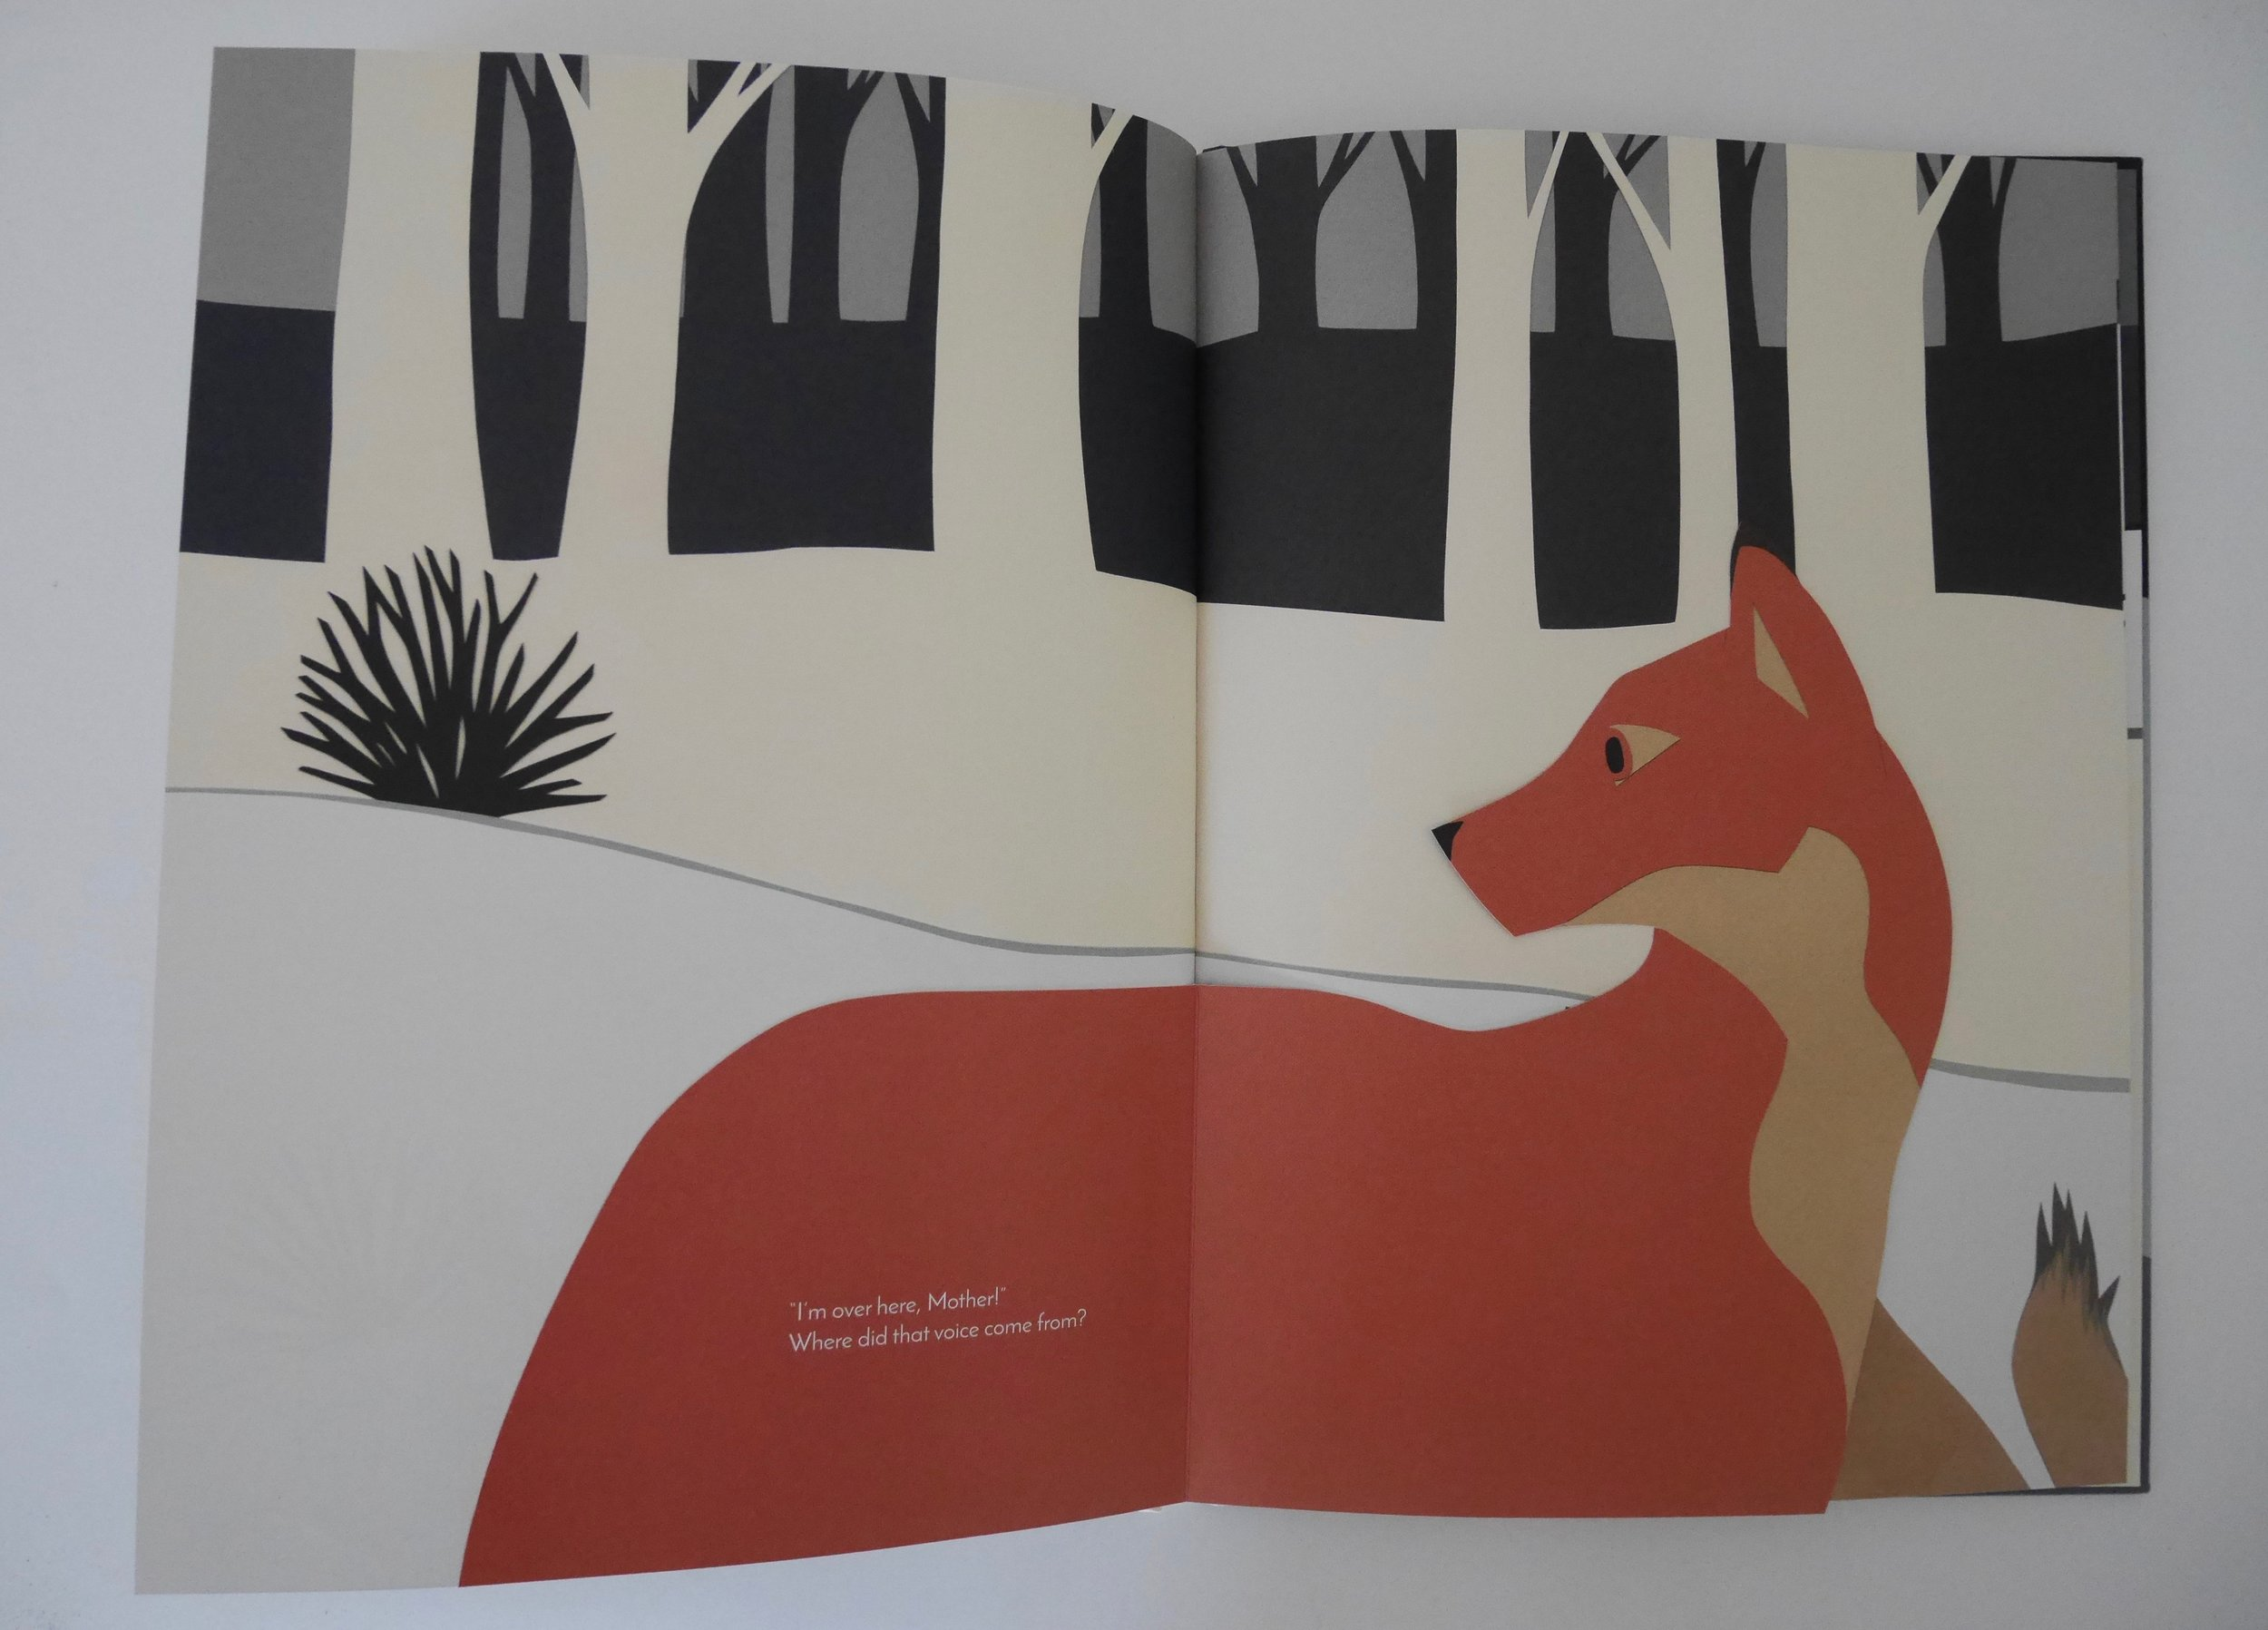 The page turns are an enormous part of the book's hide-and seek game.